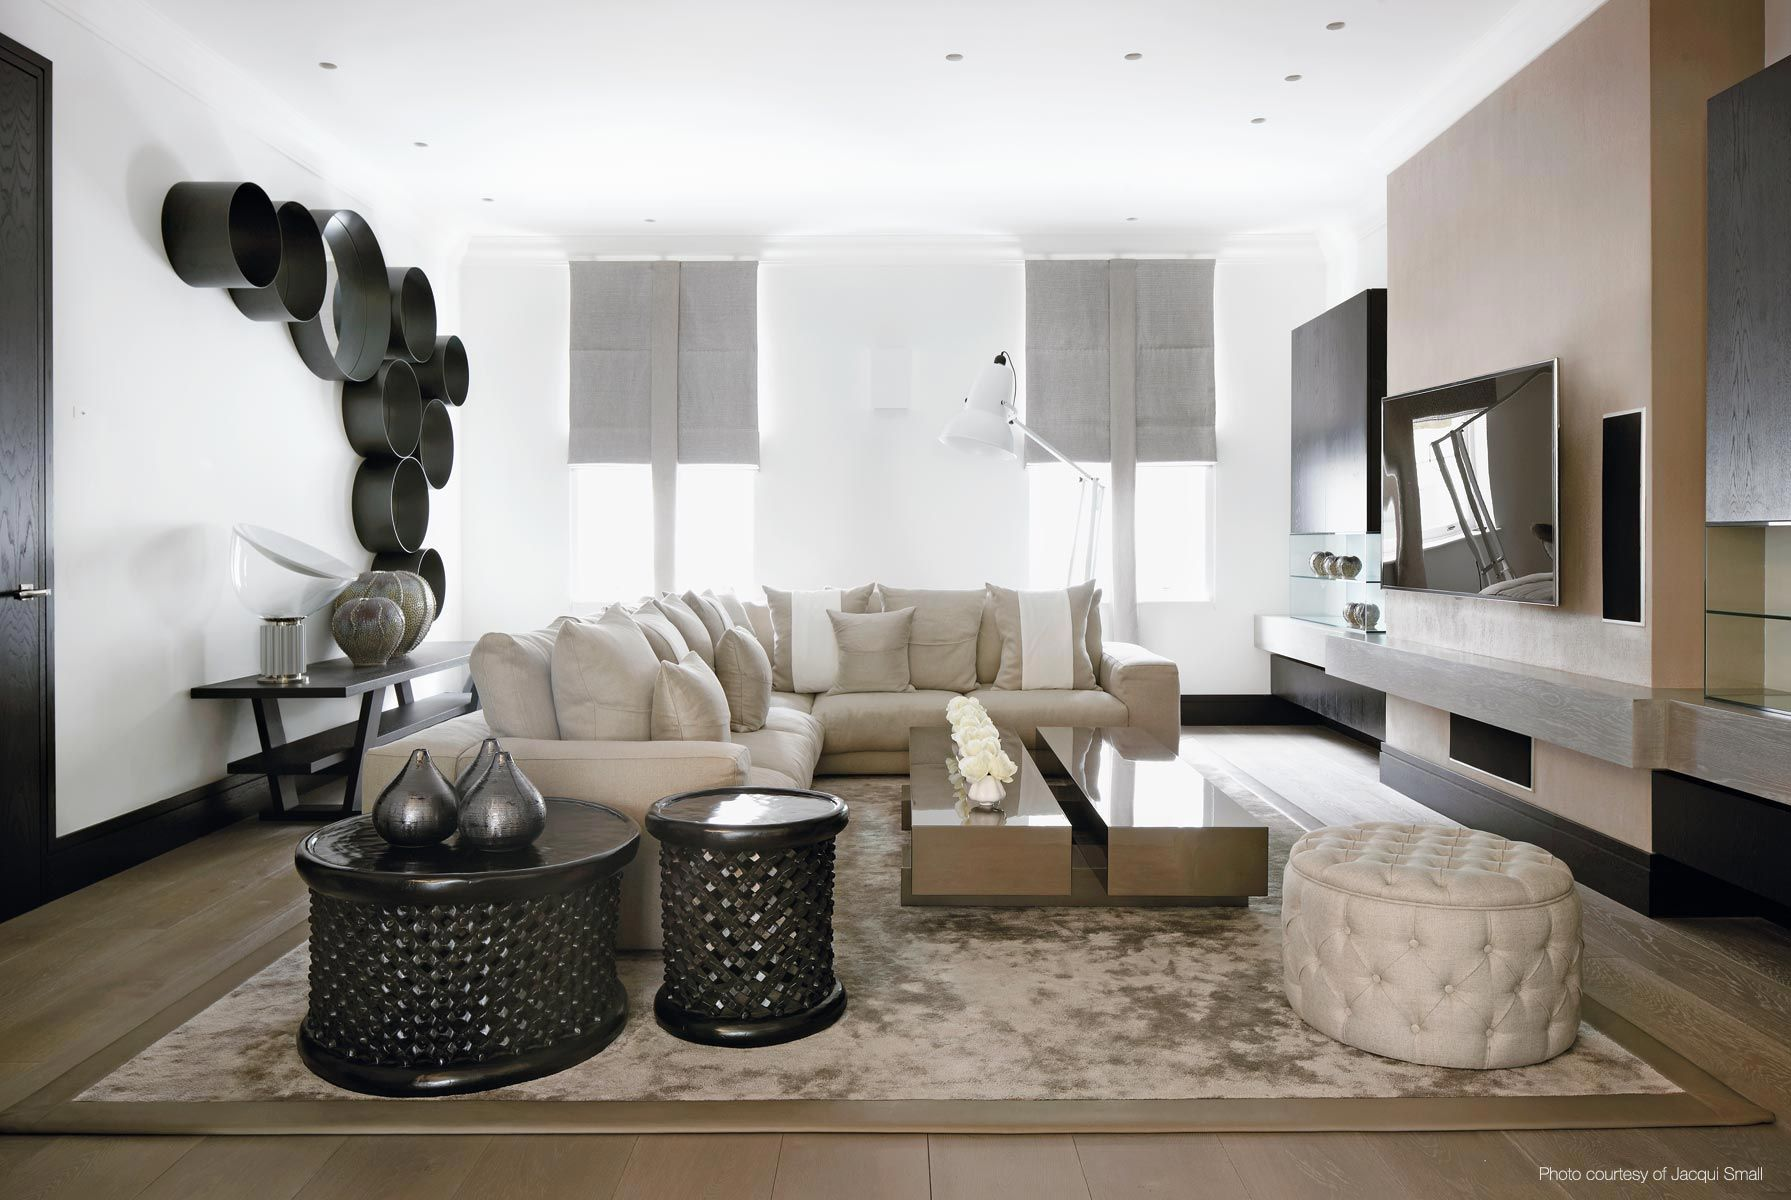 Kelly Hoppen Couture - Kelly Hoppen Interiors | decoracion | Pinterest